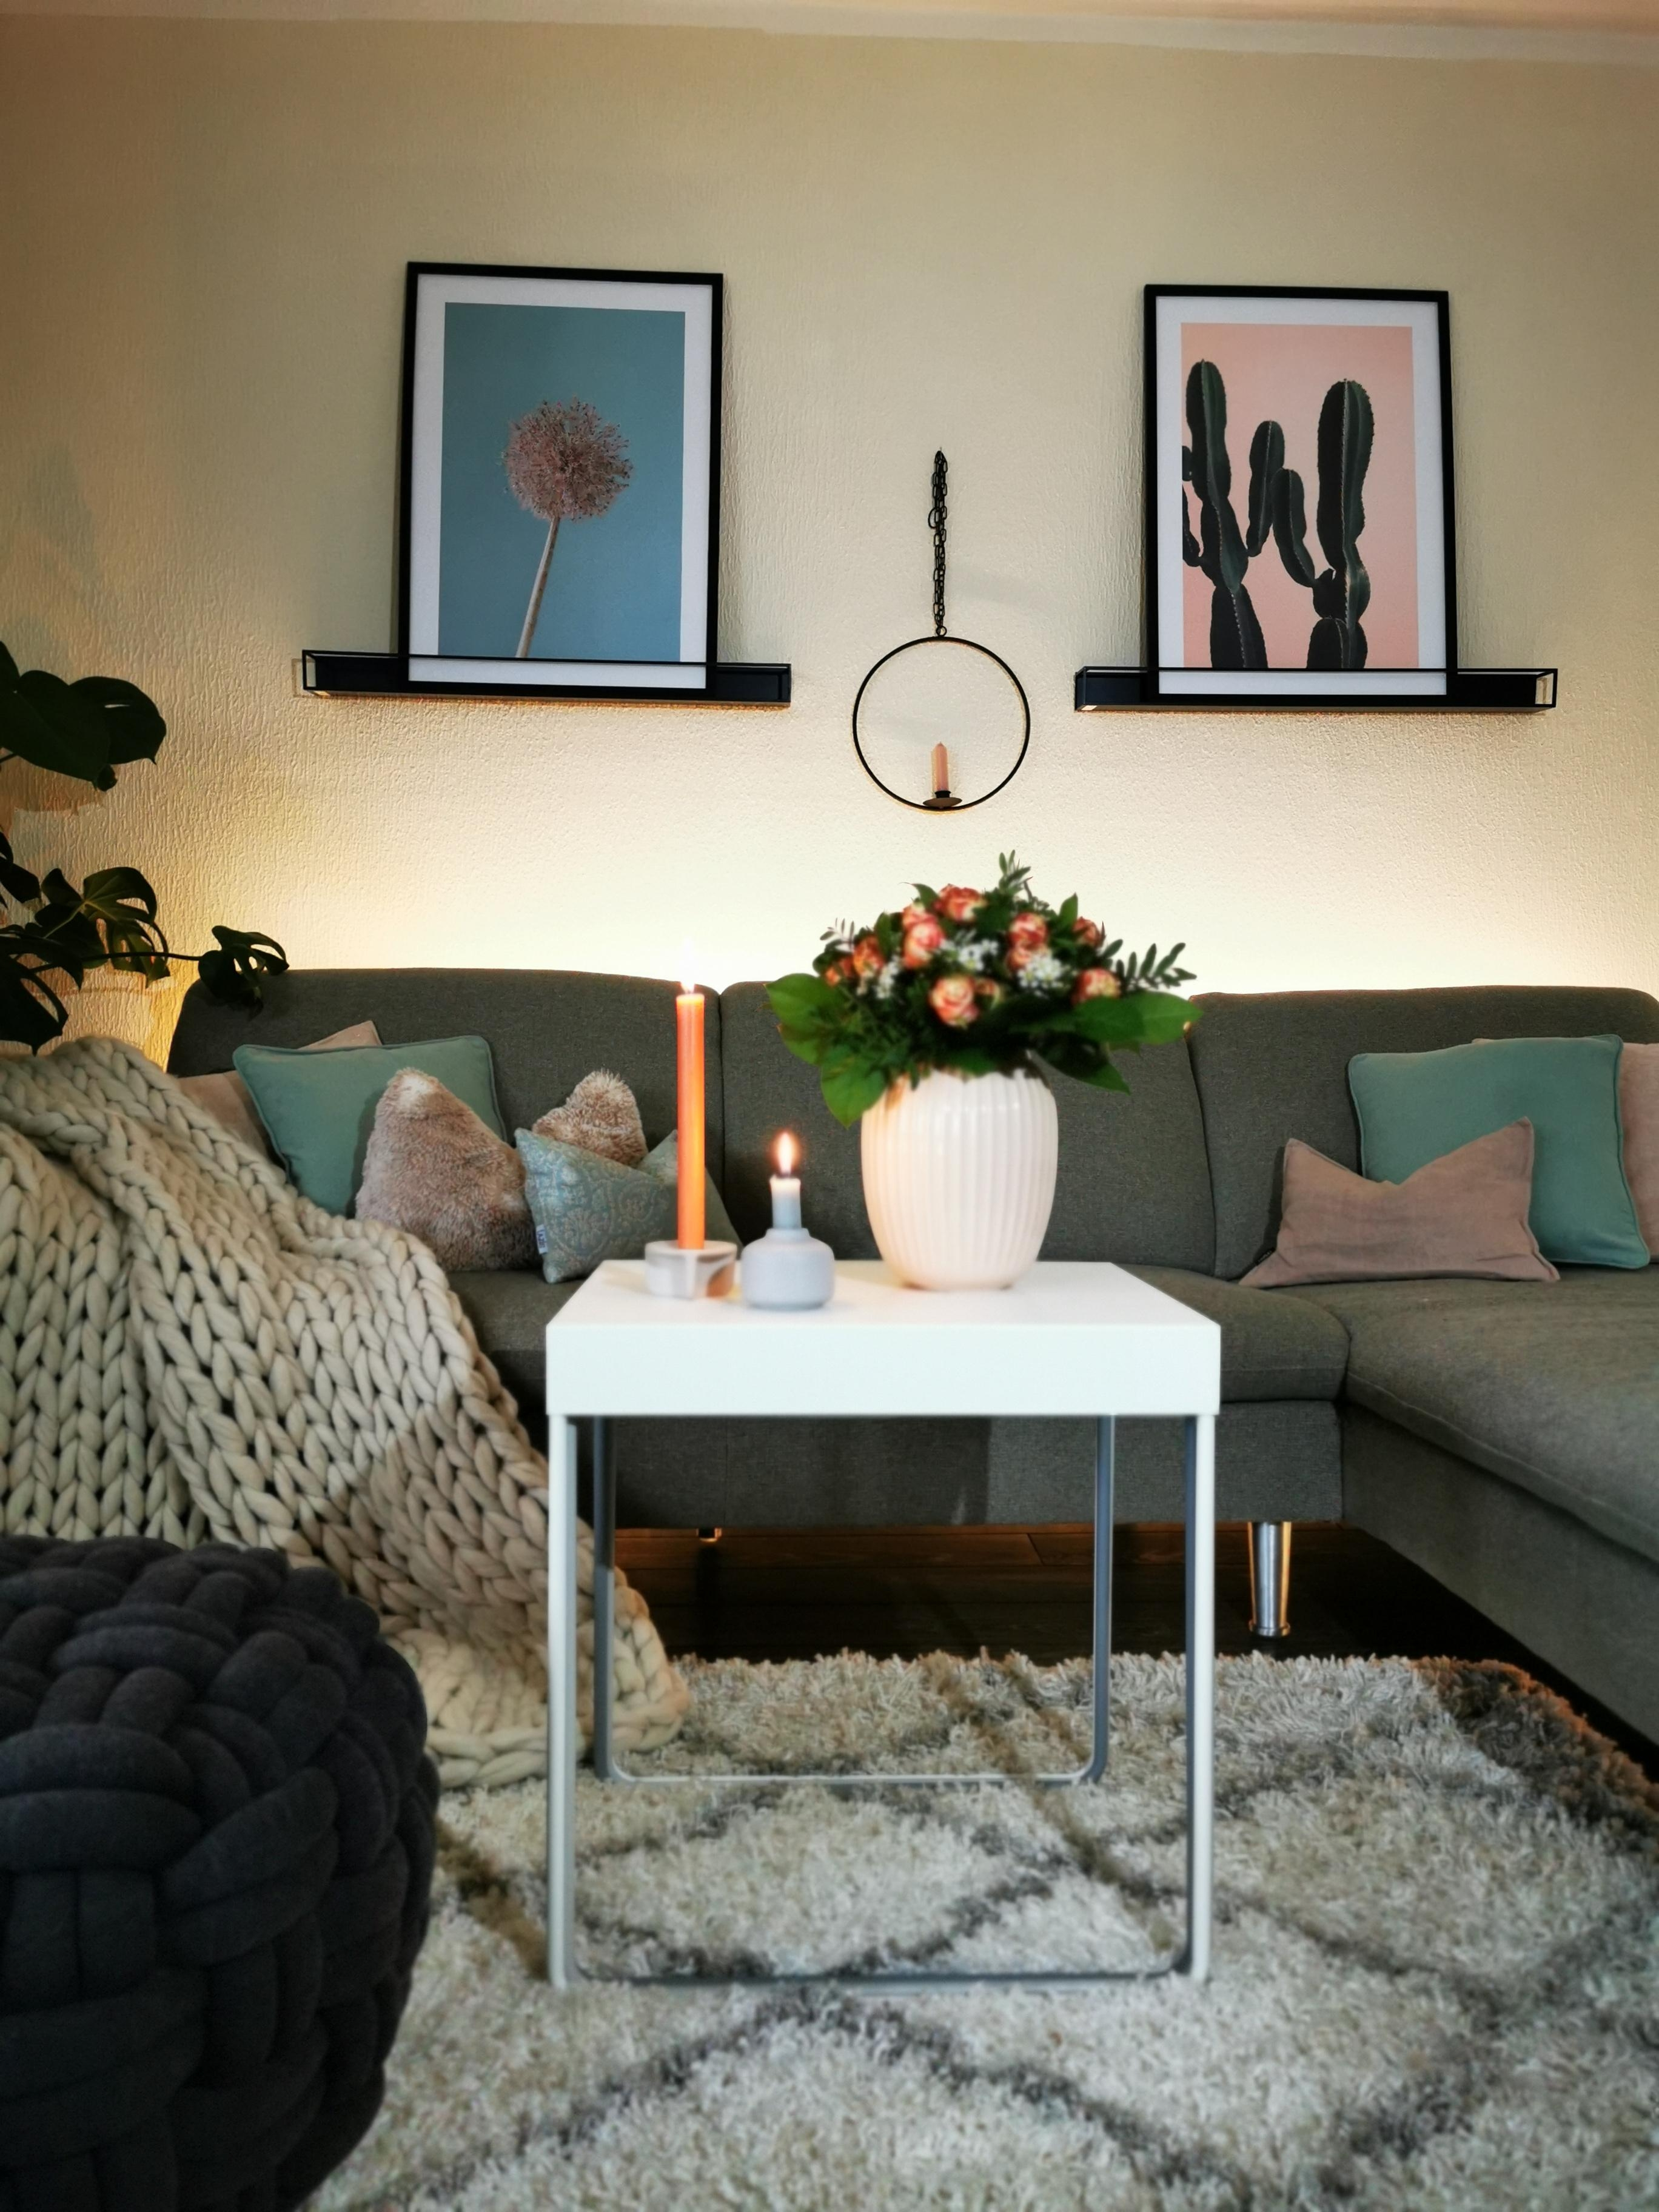 #livingroom #interior #scandistyle #hygge #couchstyle